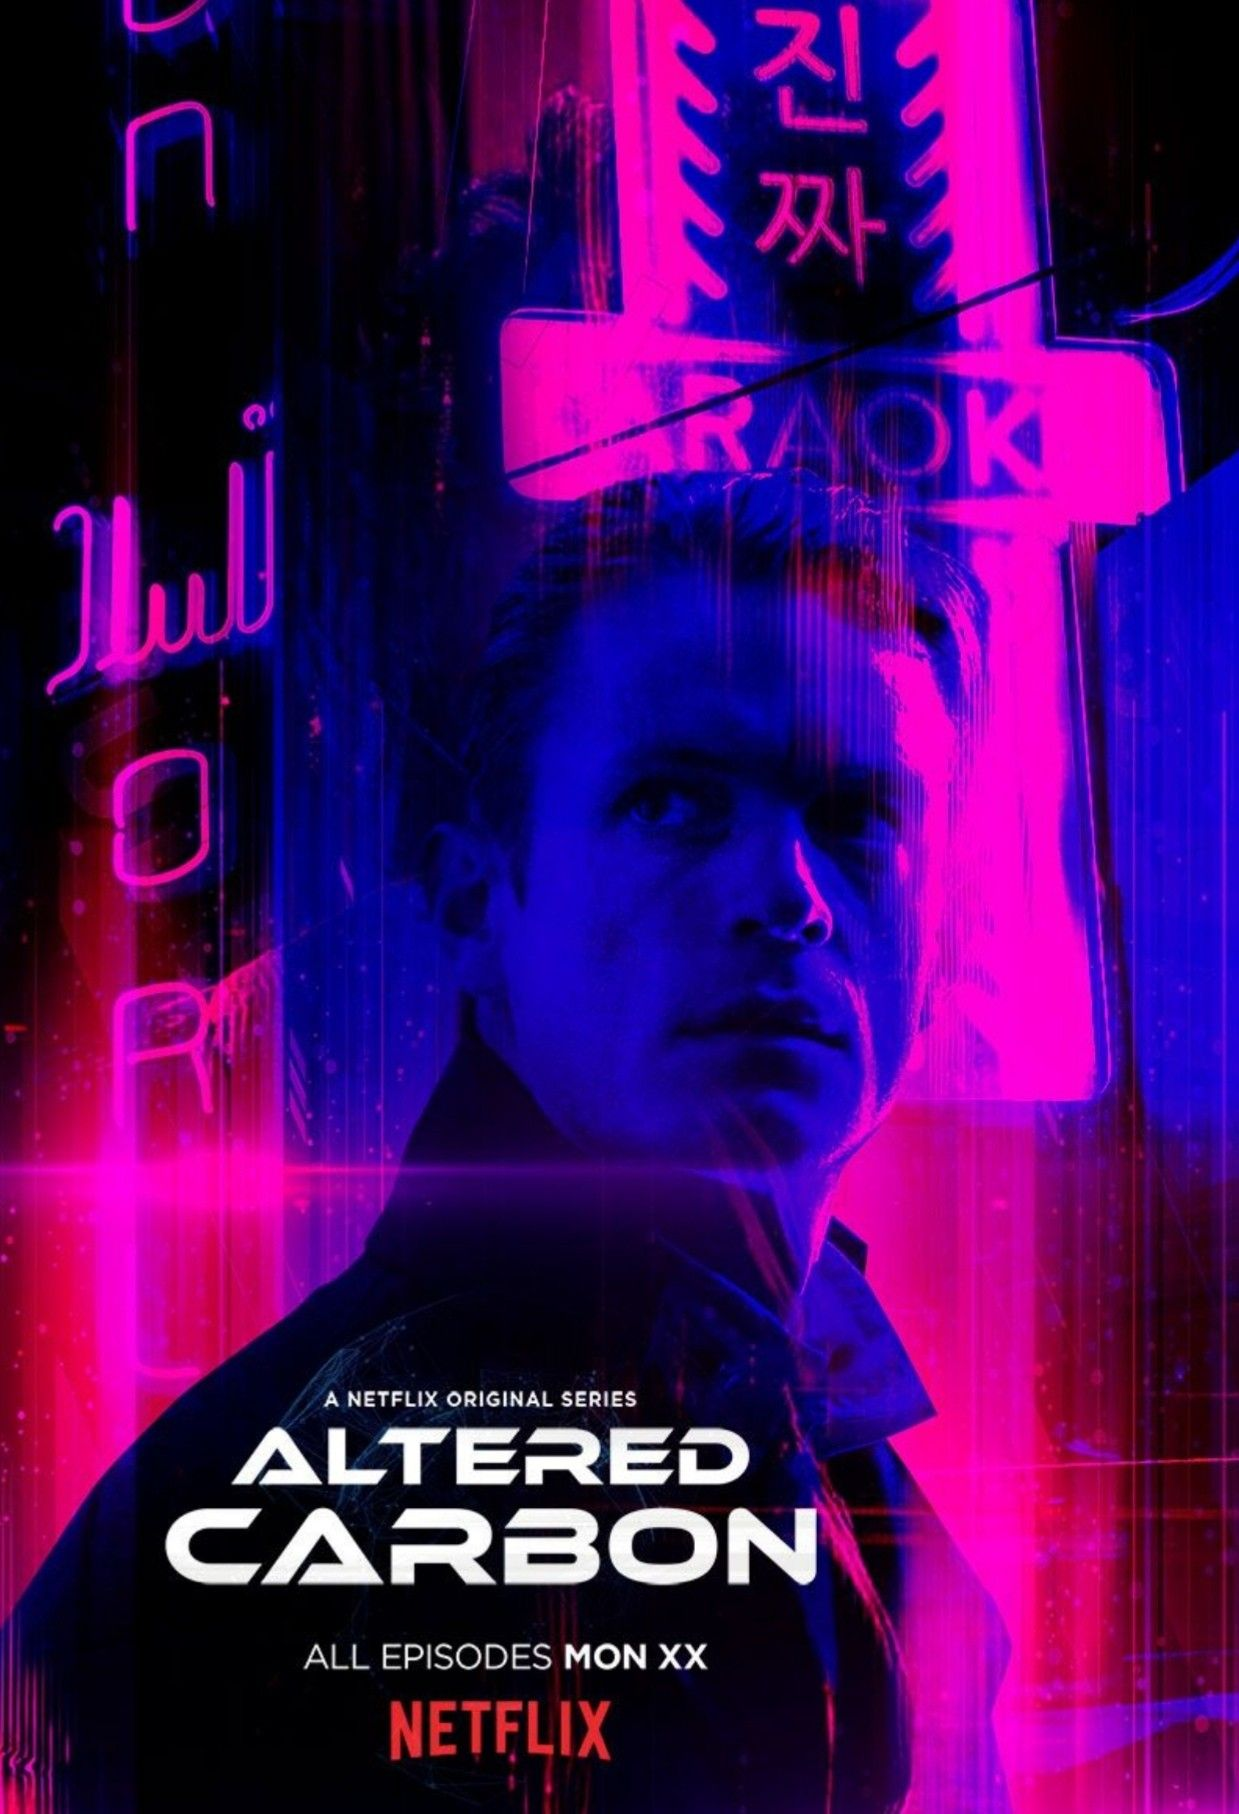 Altered Carbon Netflix Poster With Images Altered Carbon